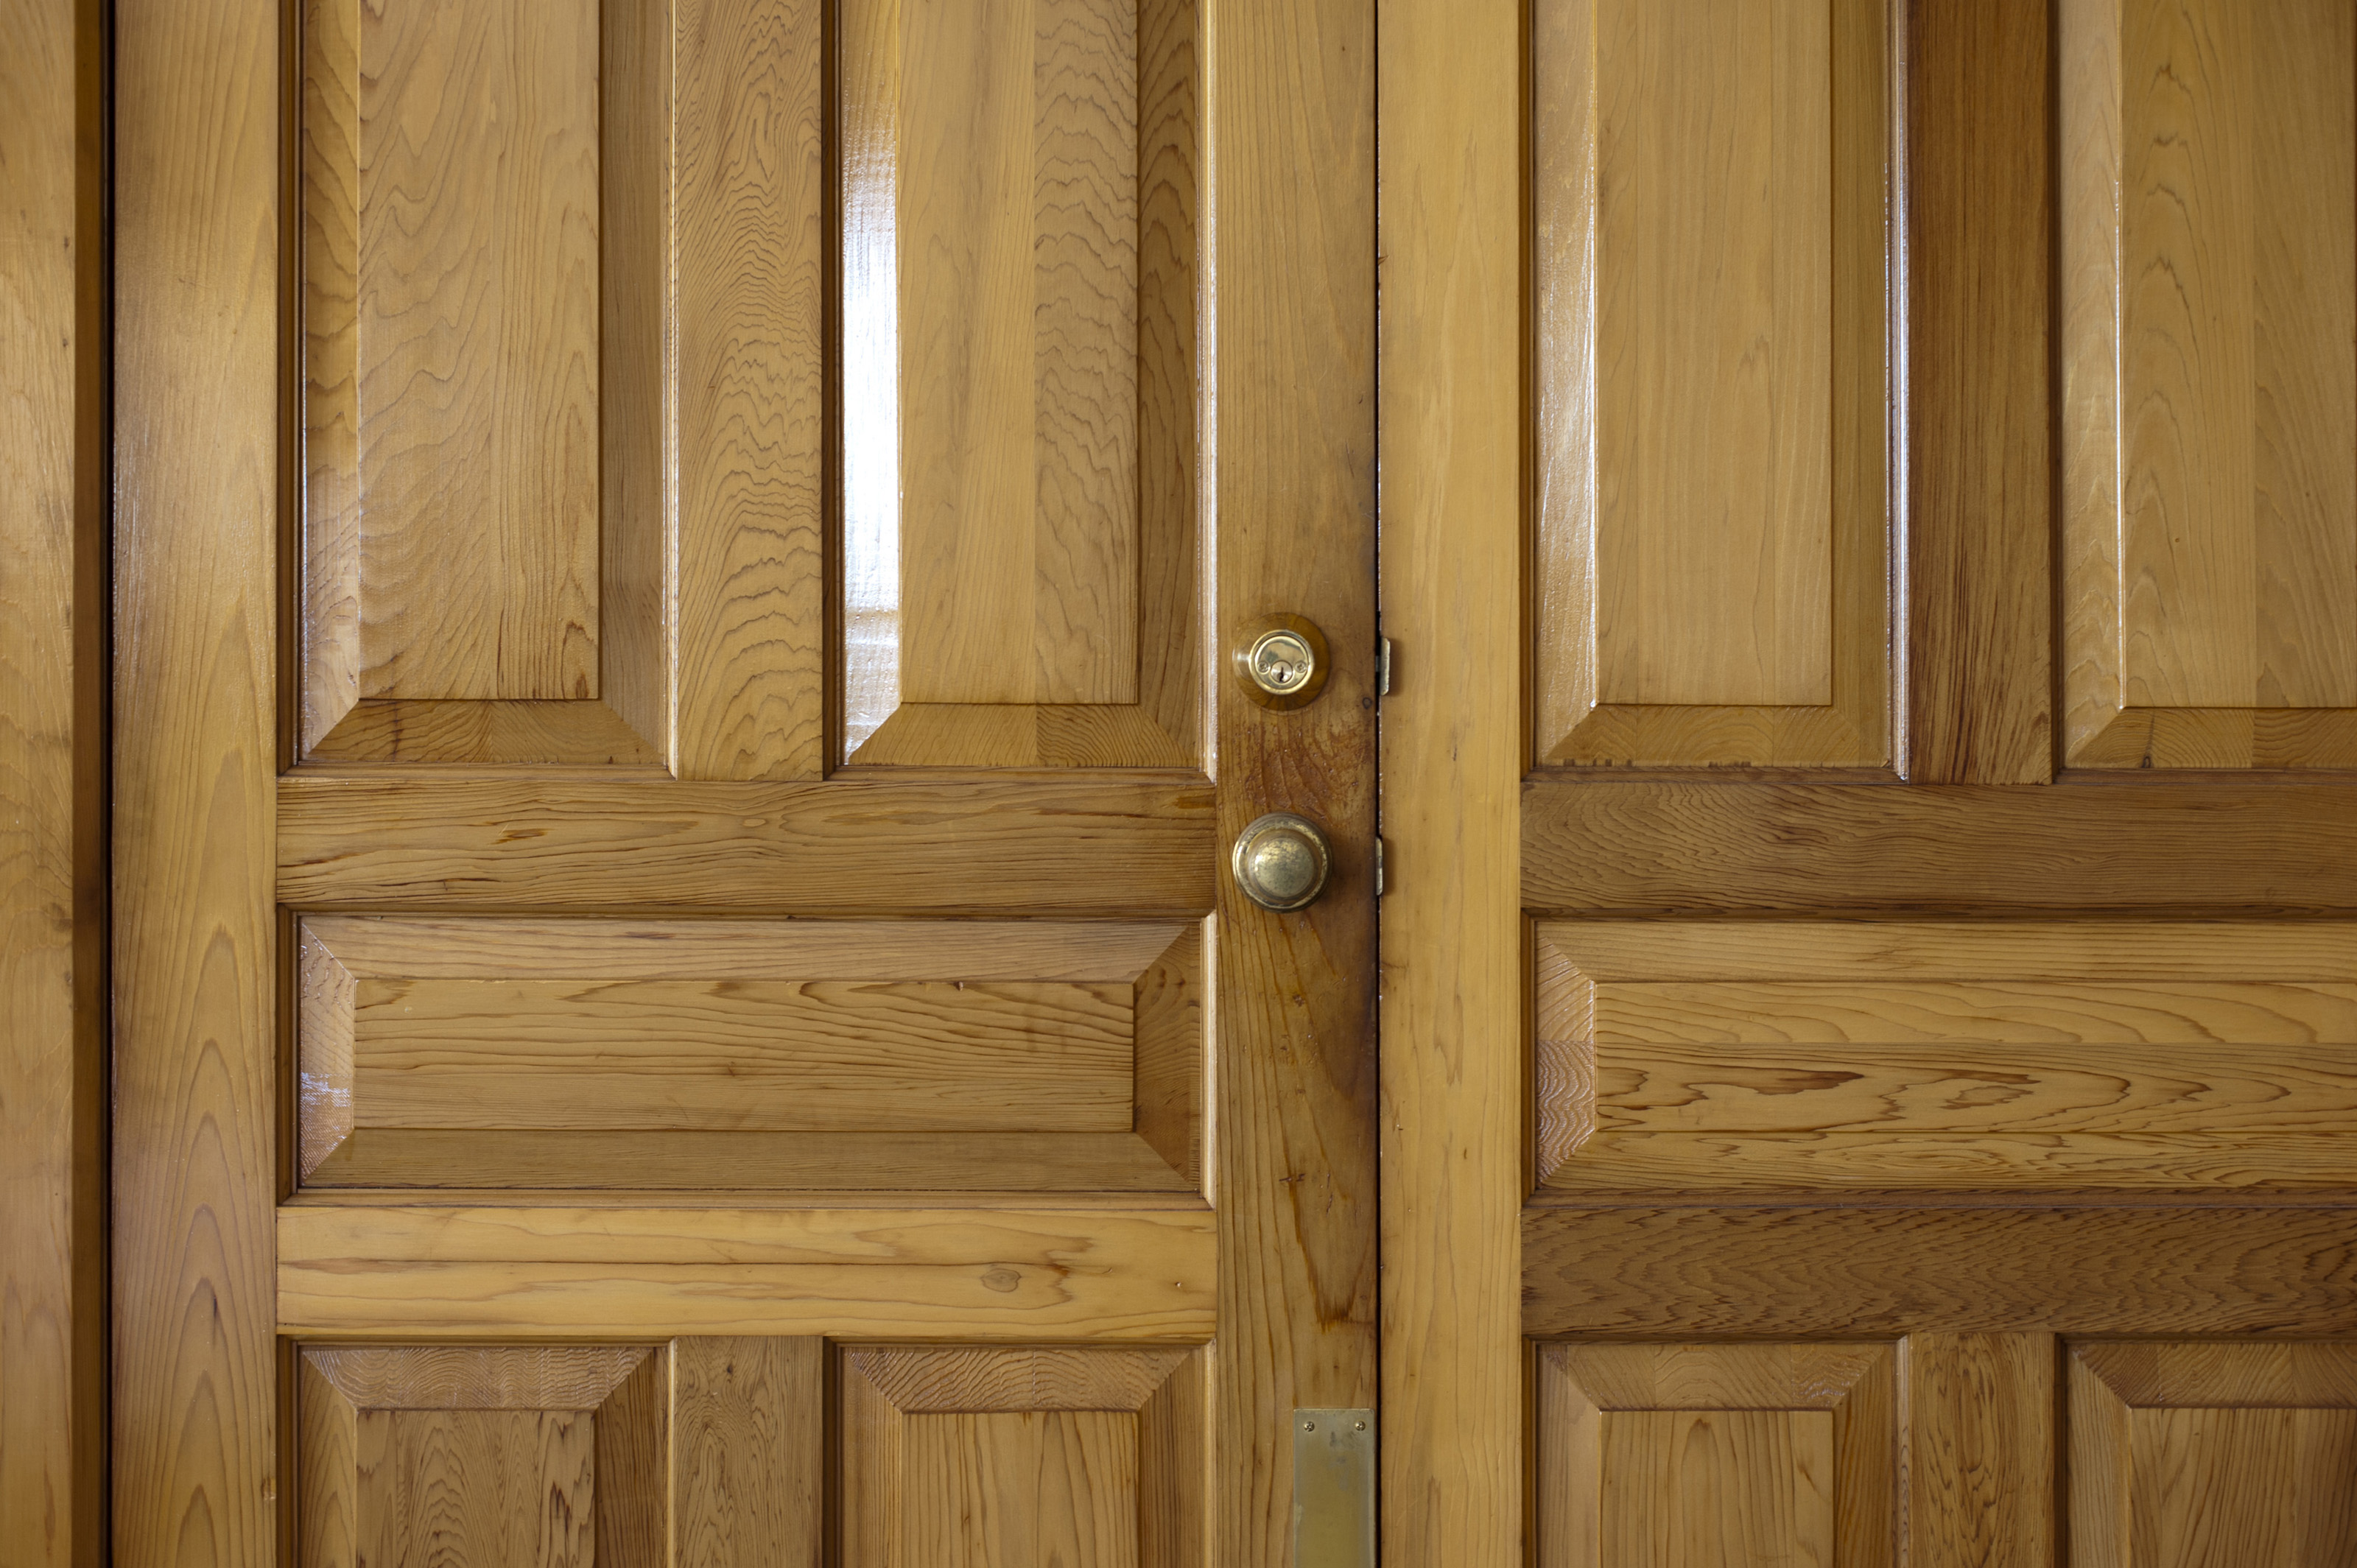 Double wooden front doors 8947 stockarch free stock photos for Double door wooden door